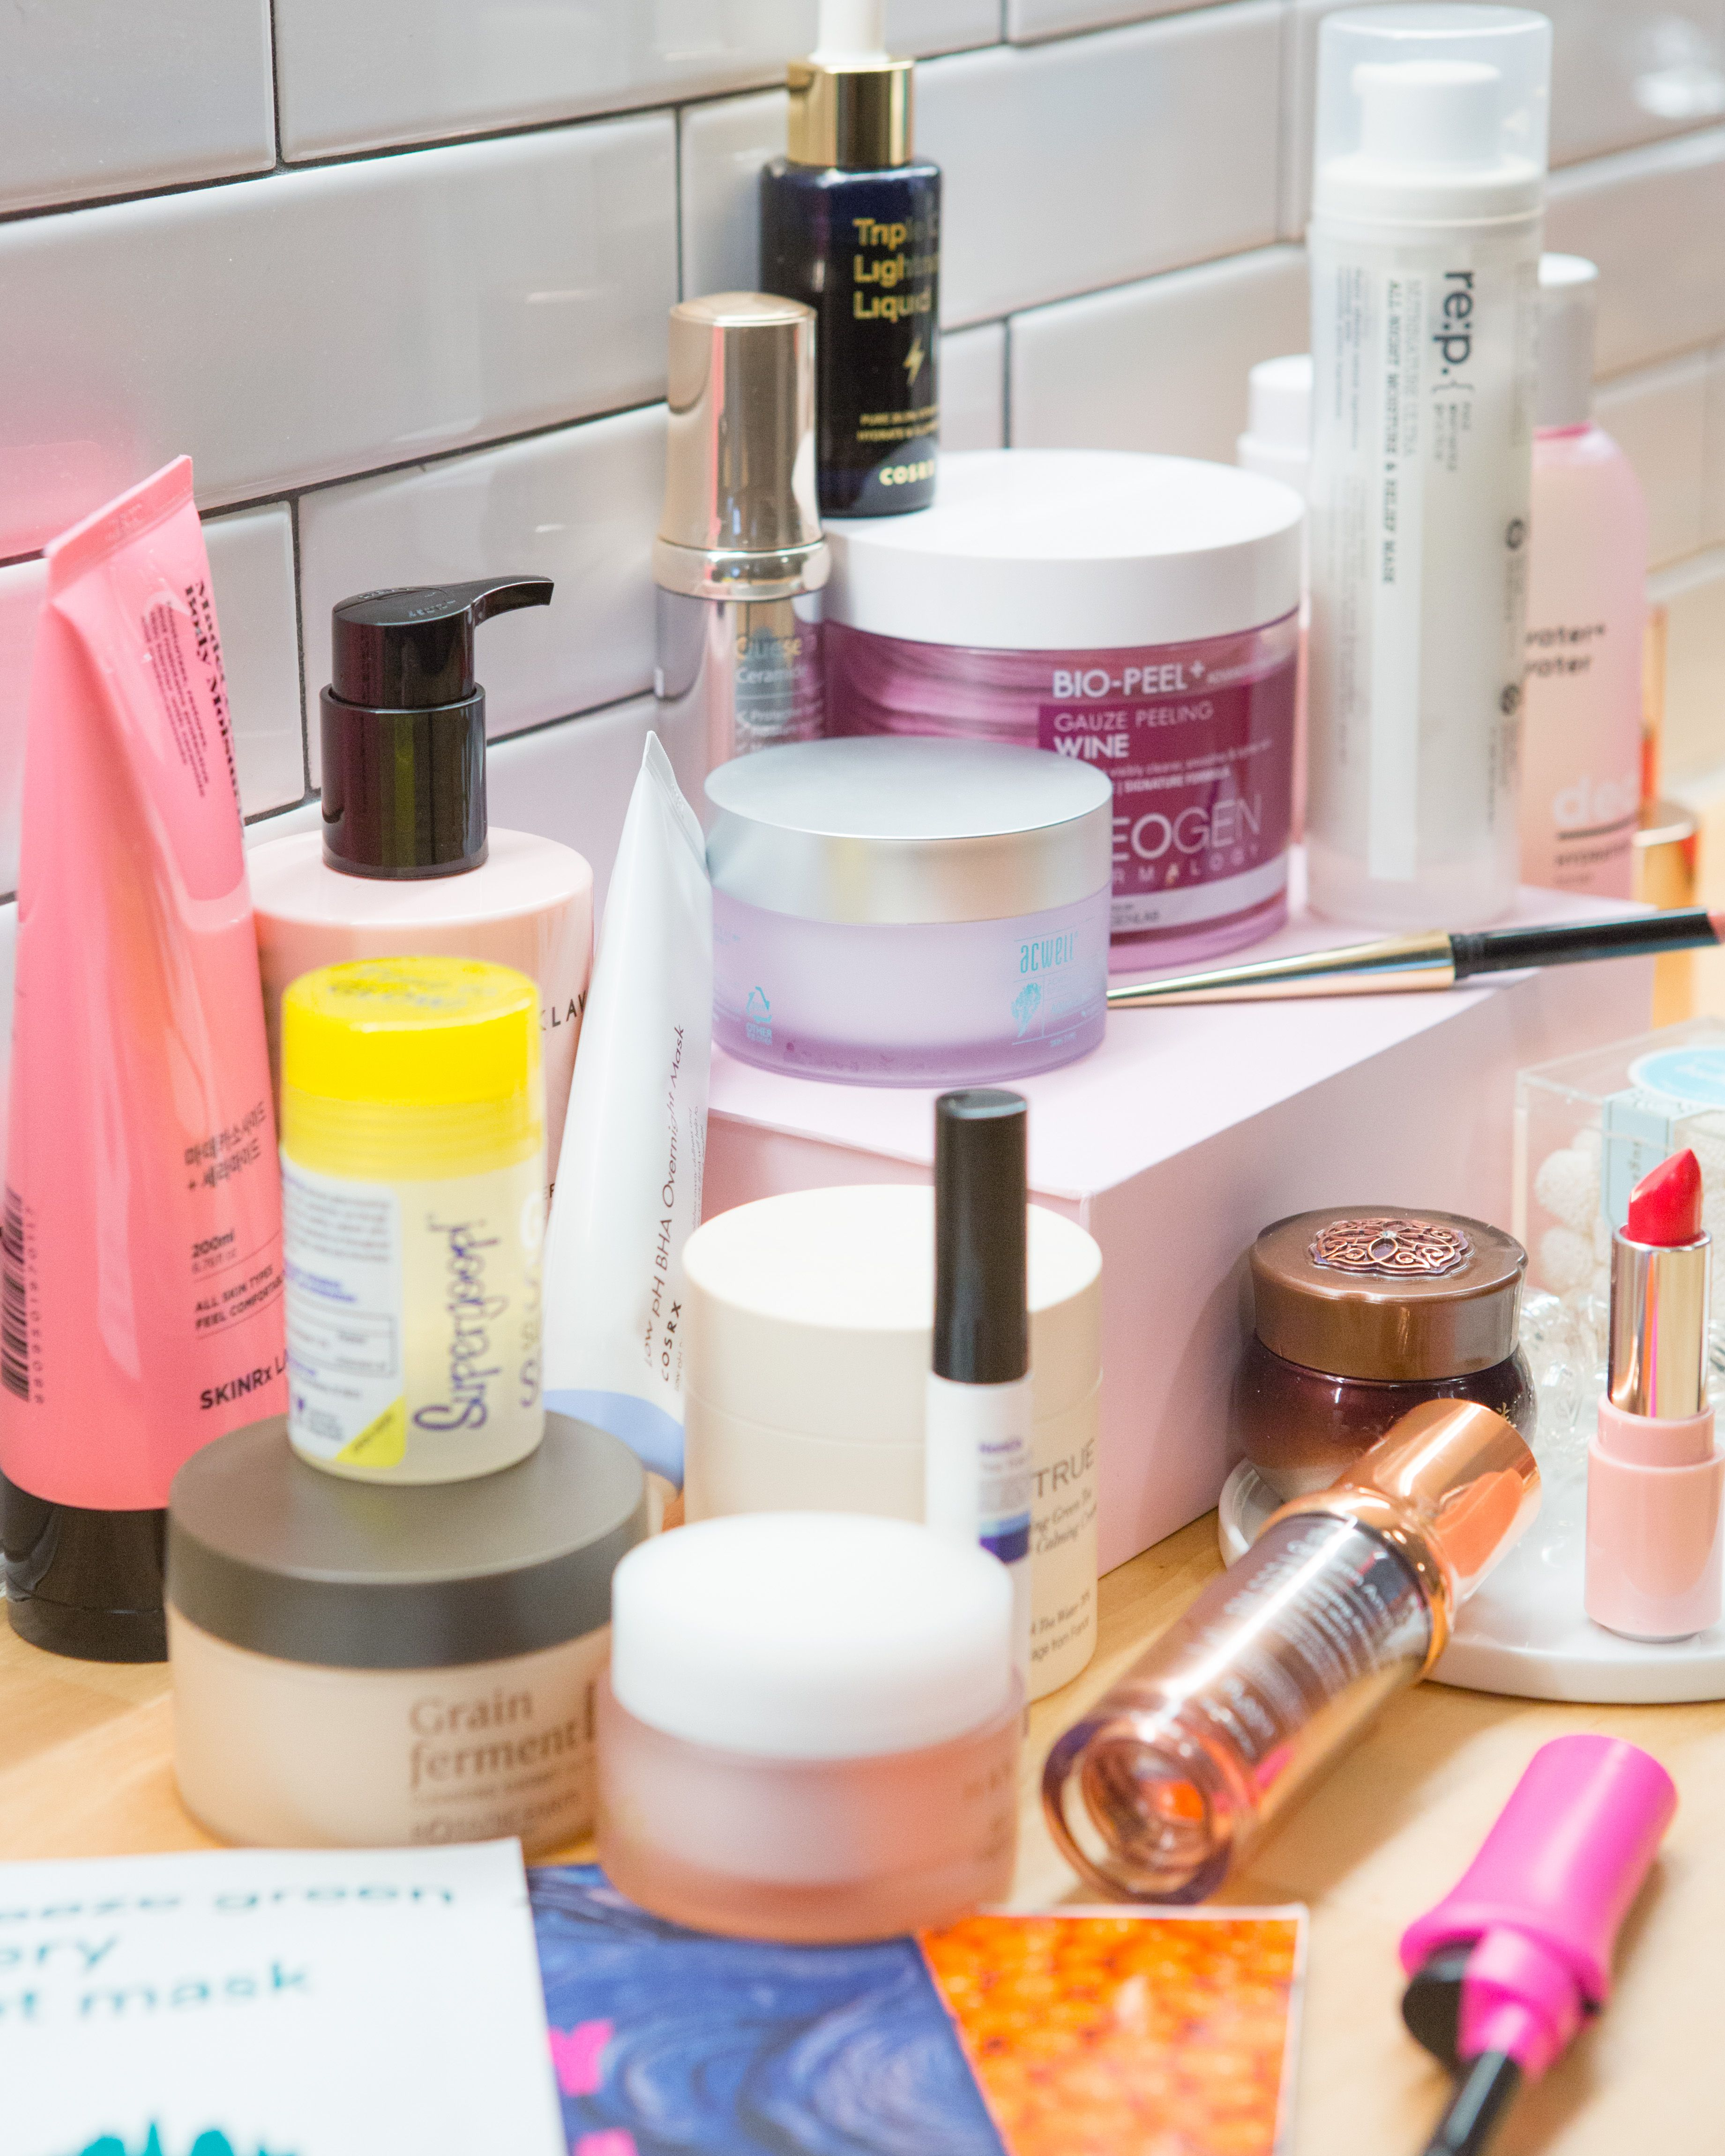 How To Ease Into A New Skin Care Routine Skin Care Routine Korean Skincare Routine Skin Care Routine 40s